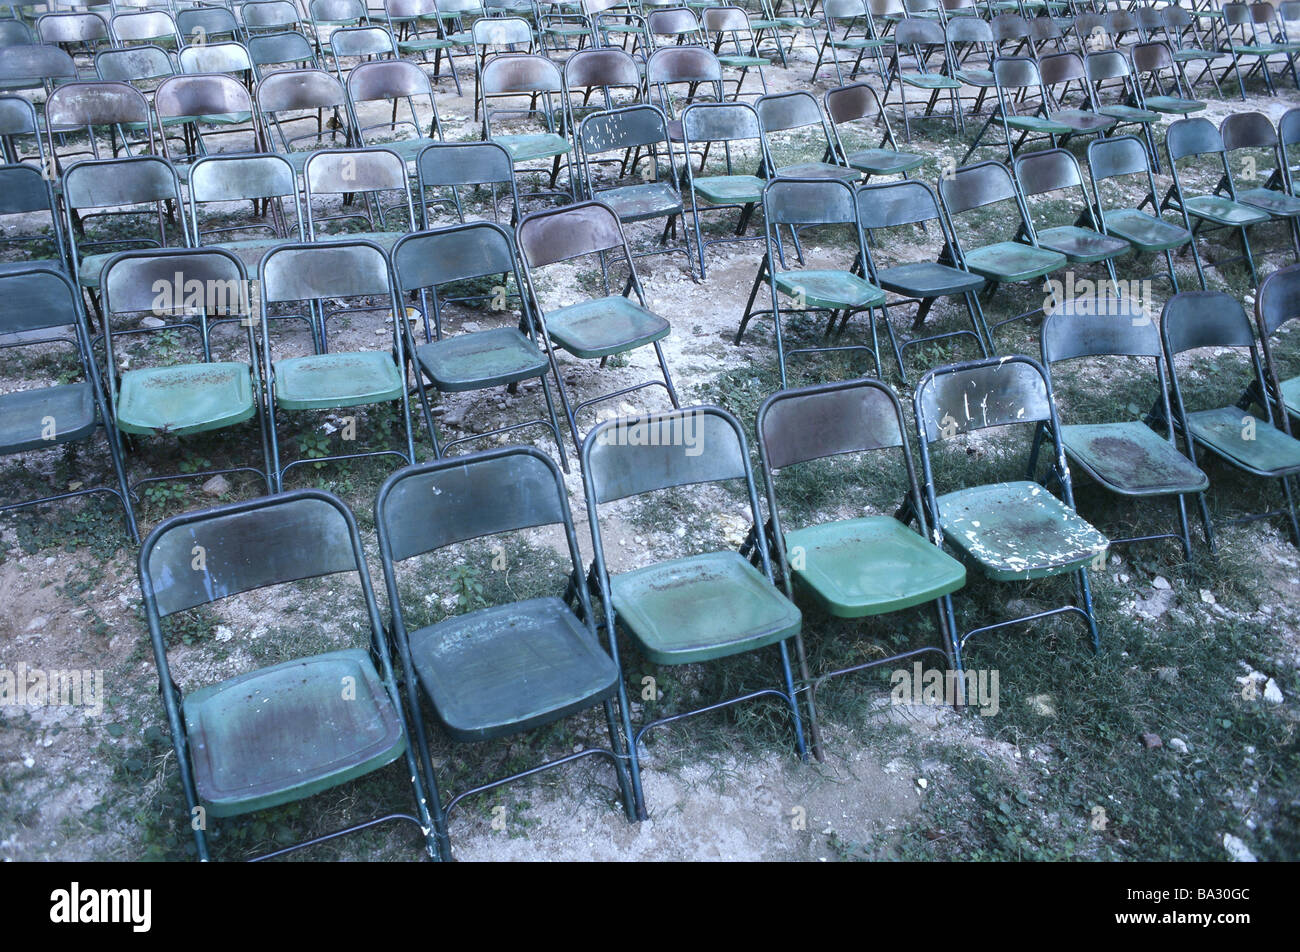 Lovely India Madurai Open Air Theaters Chairs Green Old Empty Free Terrains  Location Of The Event Auditorium Bestuhlung Chair Rows